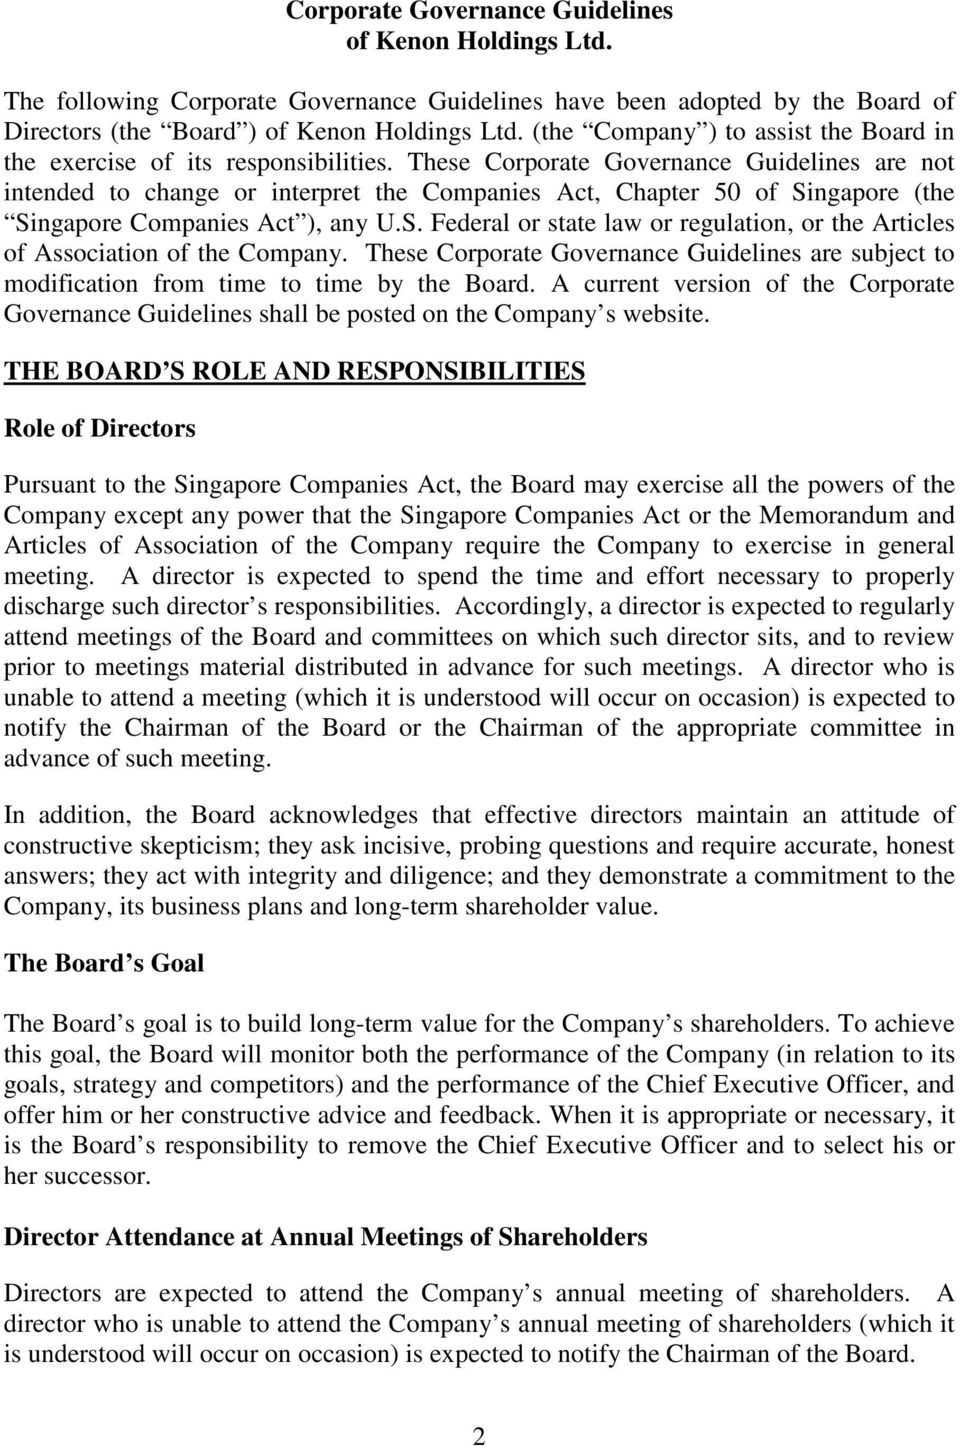 These Corporate Governance Guidelines are not intended to change or interpret the Companies Act, Chapter 50 of Singapore (the Singapore Companies Act ), any U.S. Federal or state law or regulation, or the Articles of Association of the Company.